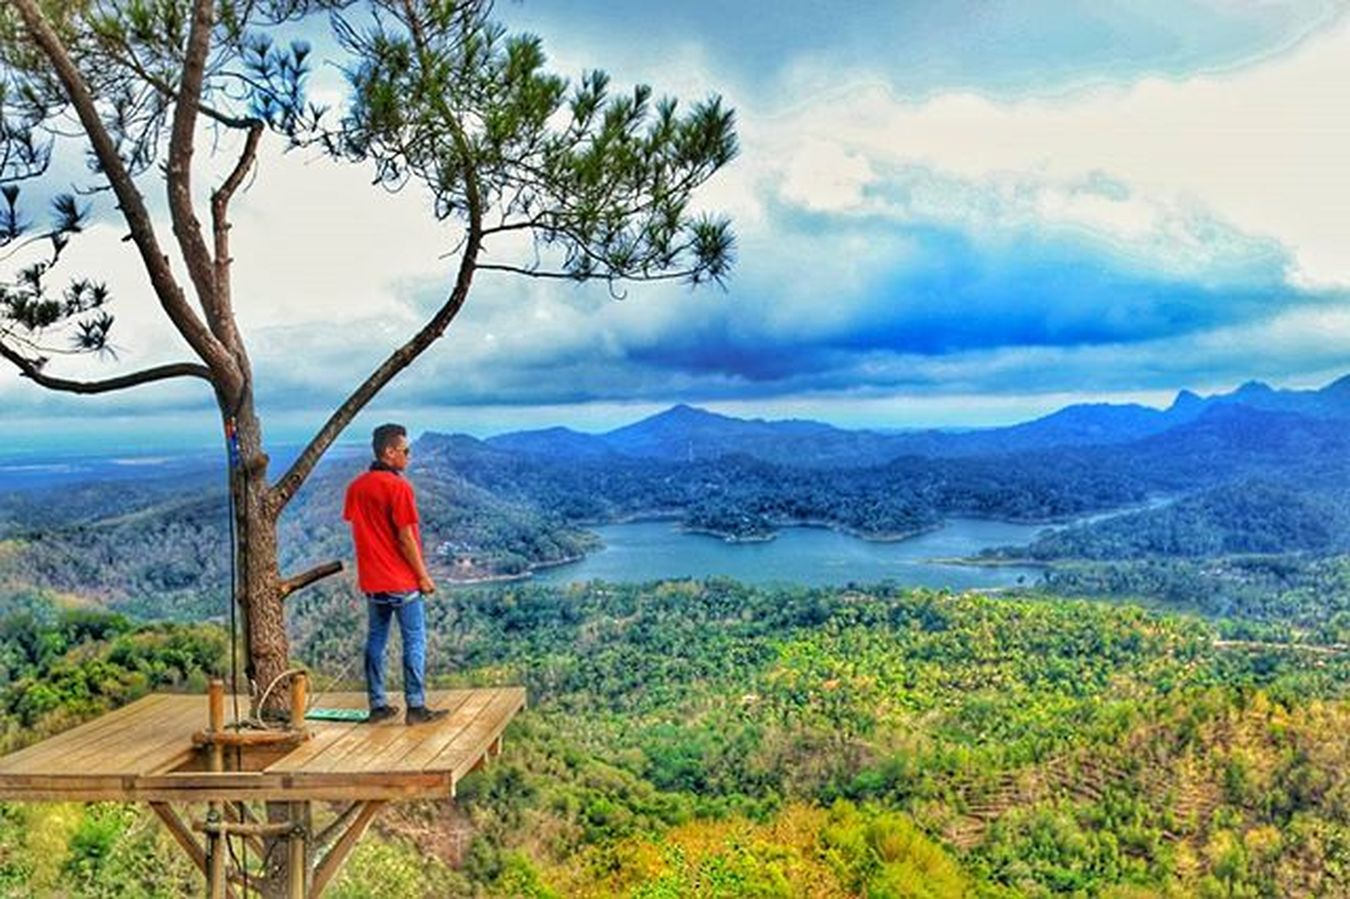 Never arrogant with what you got. Bcause however high you stand still higher than you, and the beautiful sky above there's heaven more beautiful😊☁ Explorejawatengah Kalibiru Kulonprogo Indonesiaindah Hdreffect